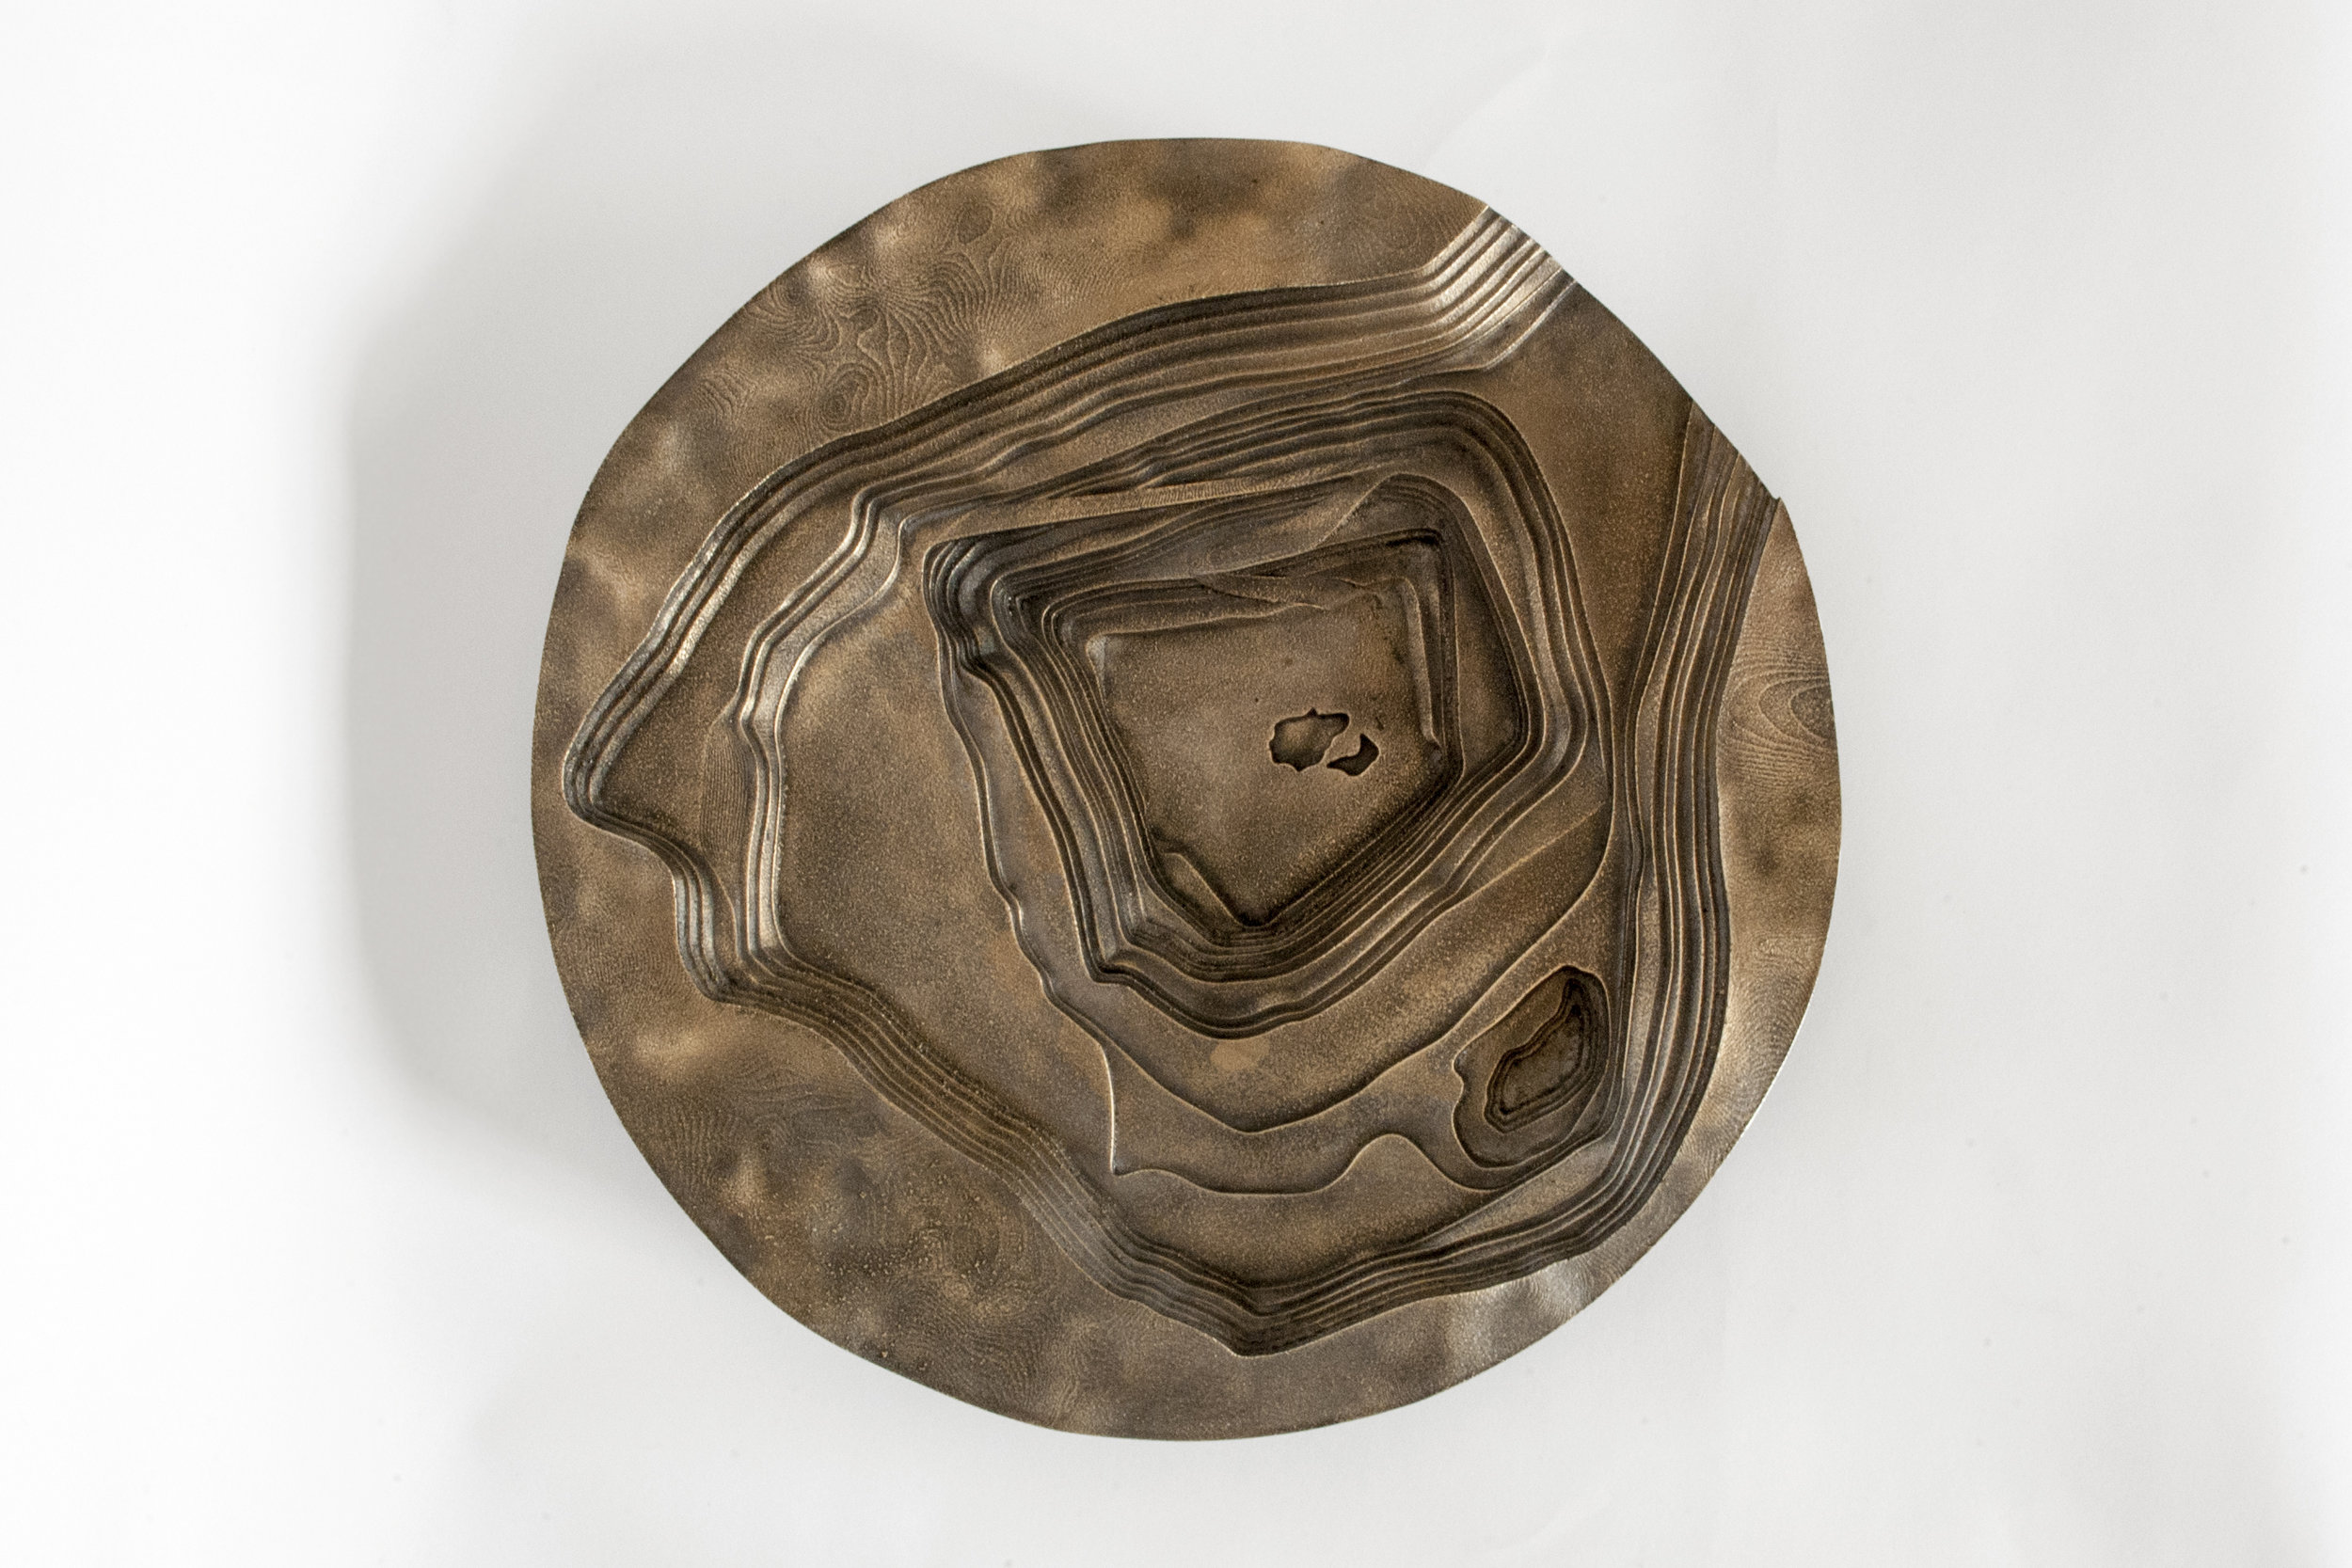 Copper Mining bowl top view - David Derksen Design.jpg